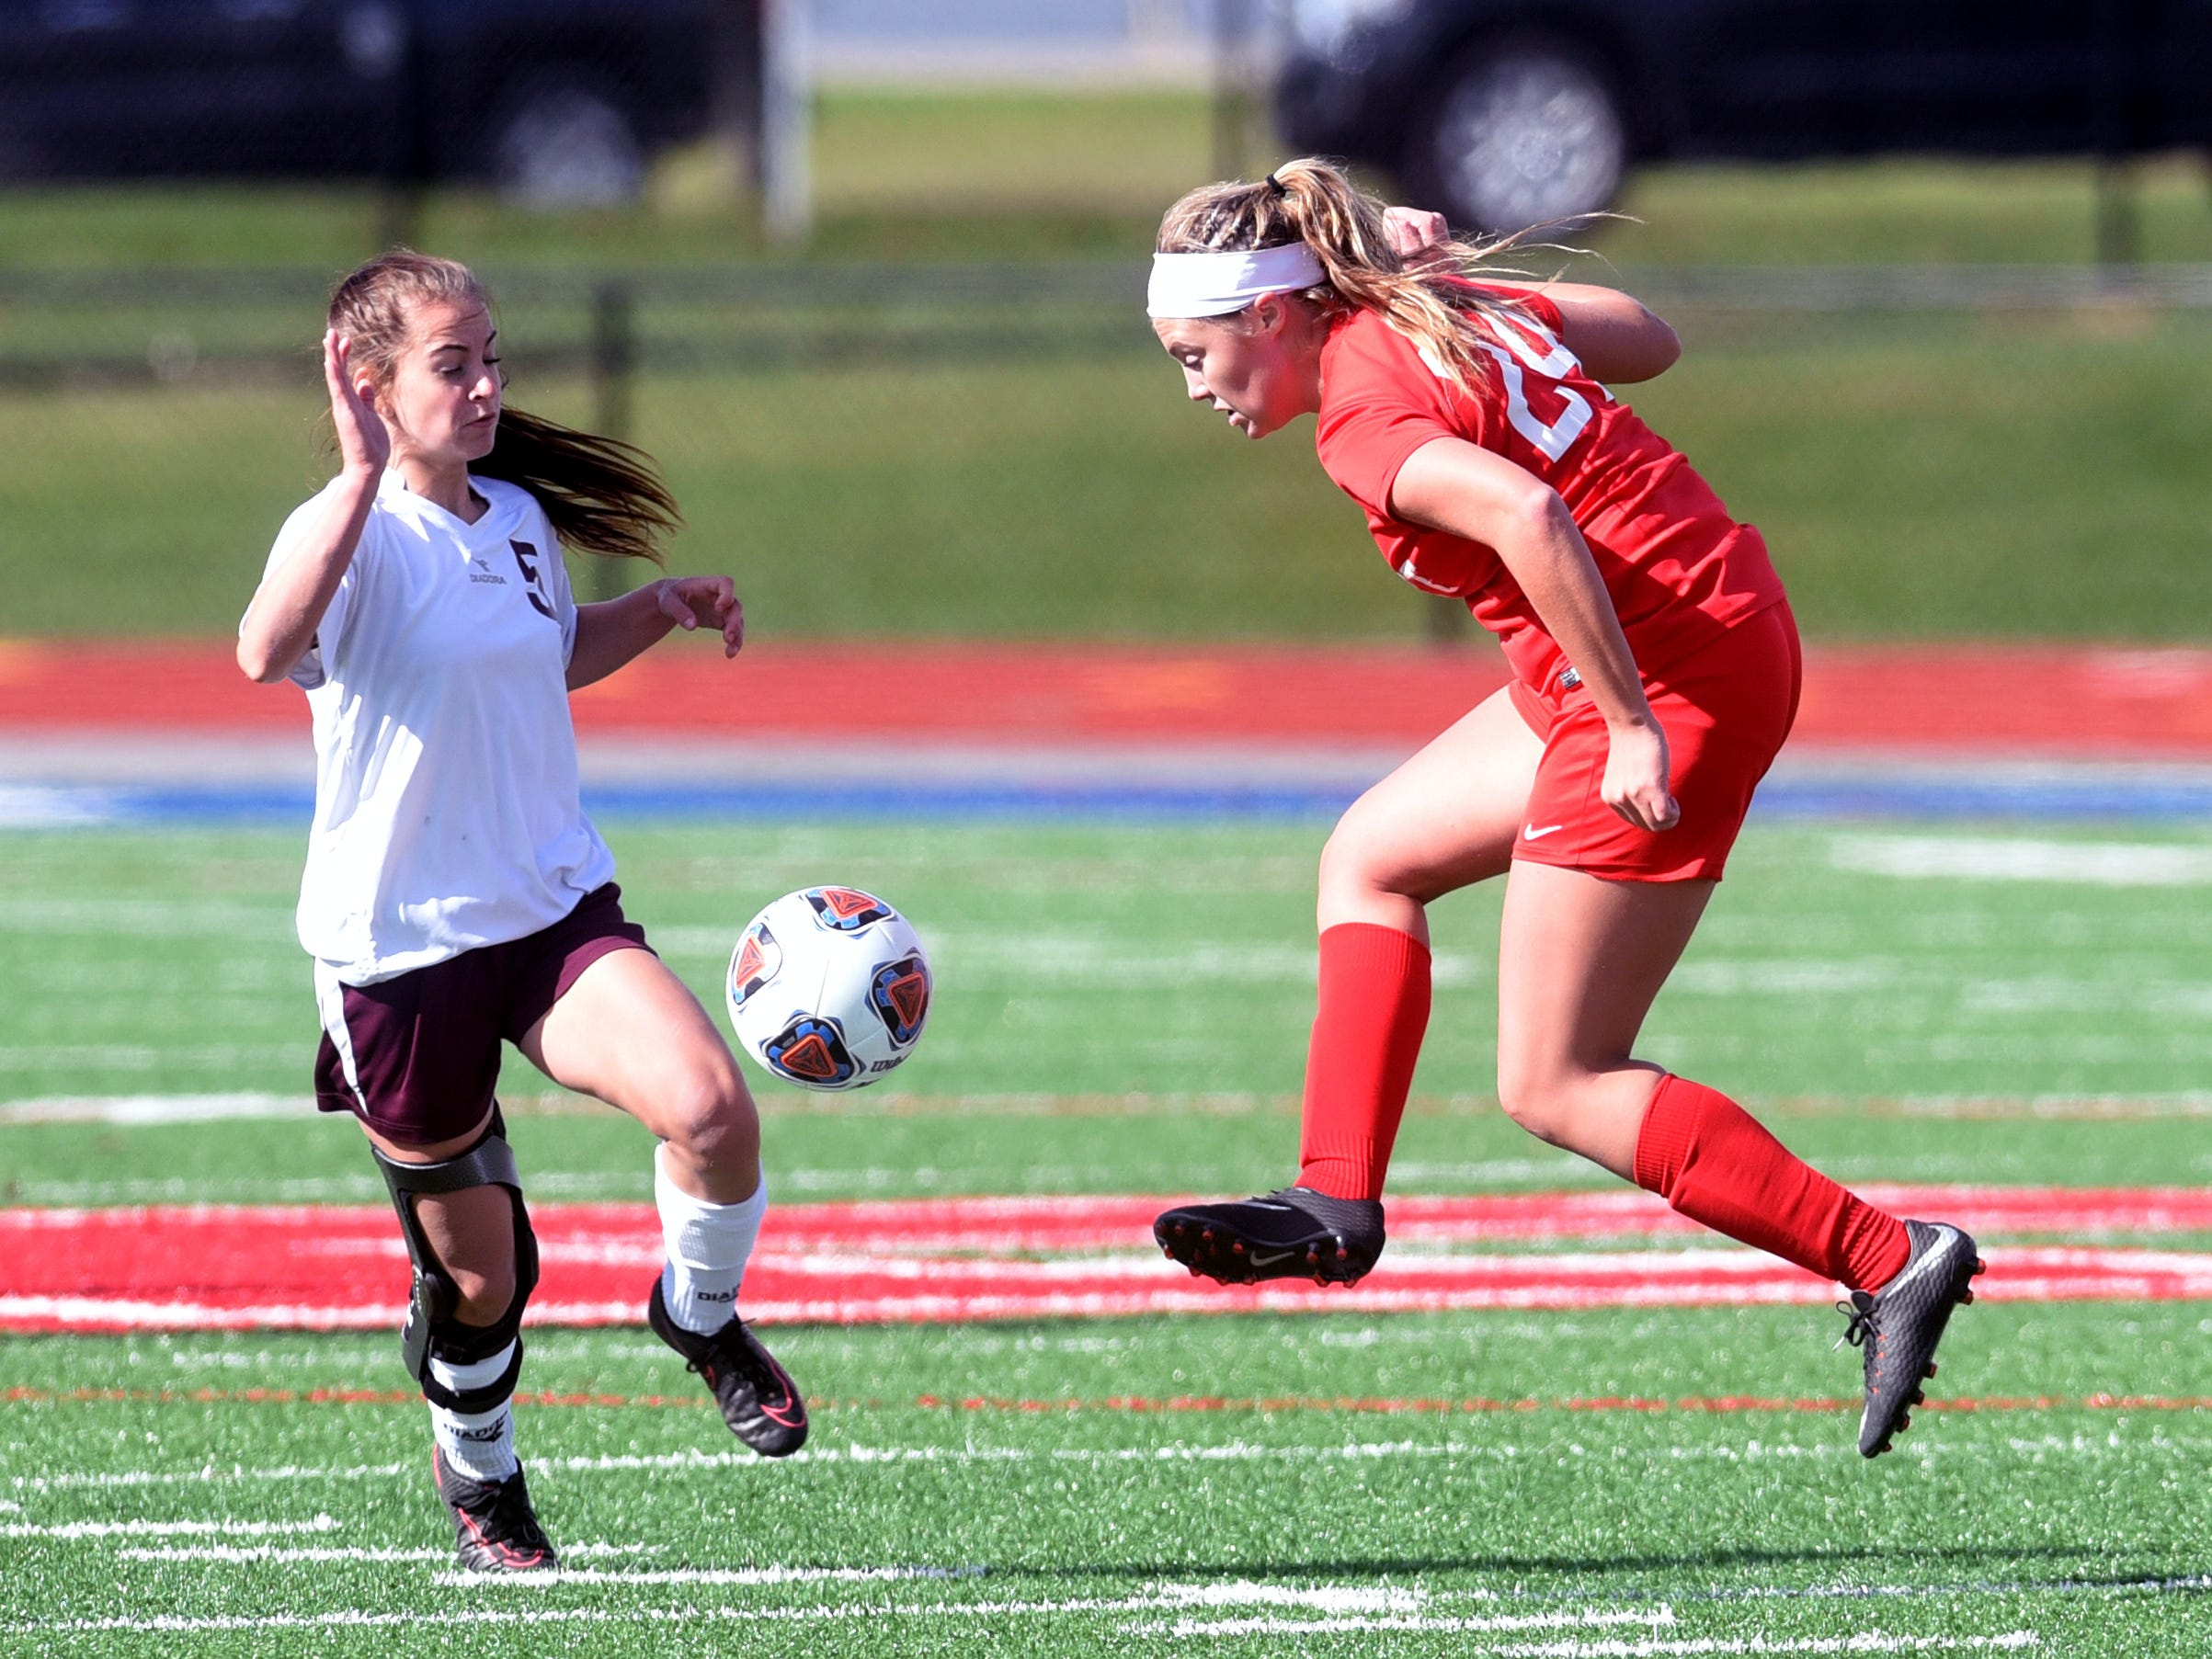 John Glenn's historic soccer season ended with a 3-0 loss to Sunbury Big Walnut in a Division II regional final at Lakewood High School.